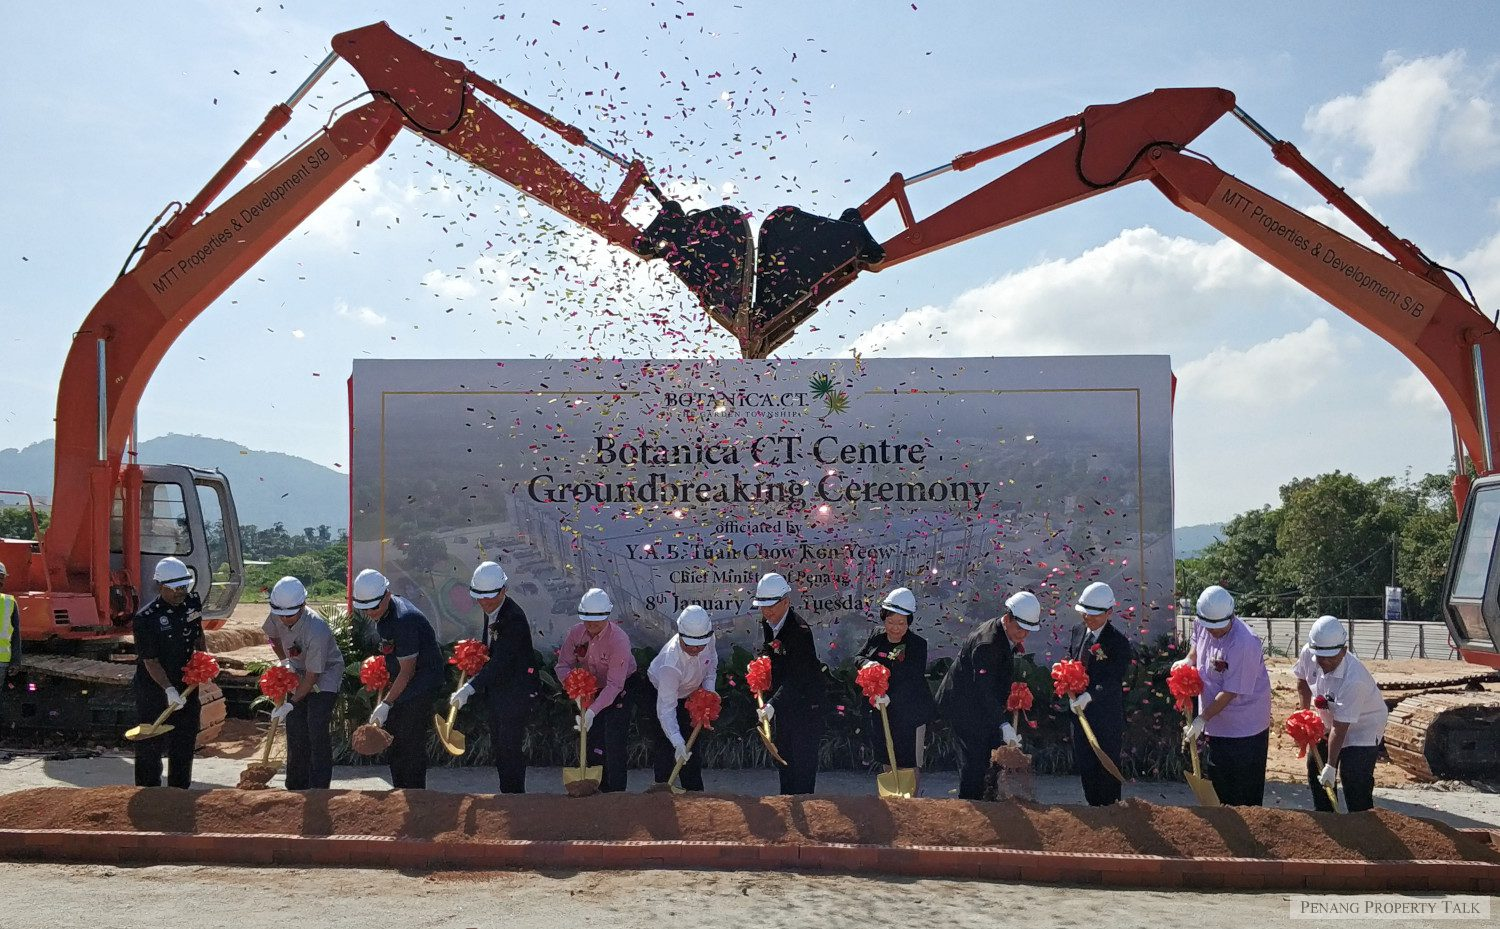 botanica-ct-groundbreaking